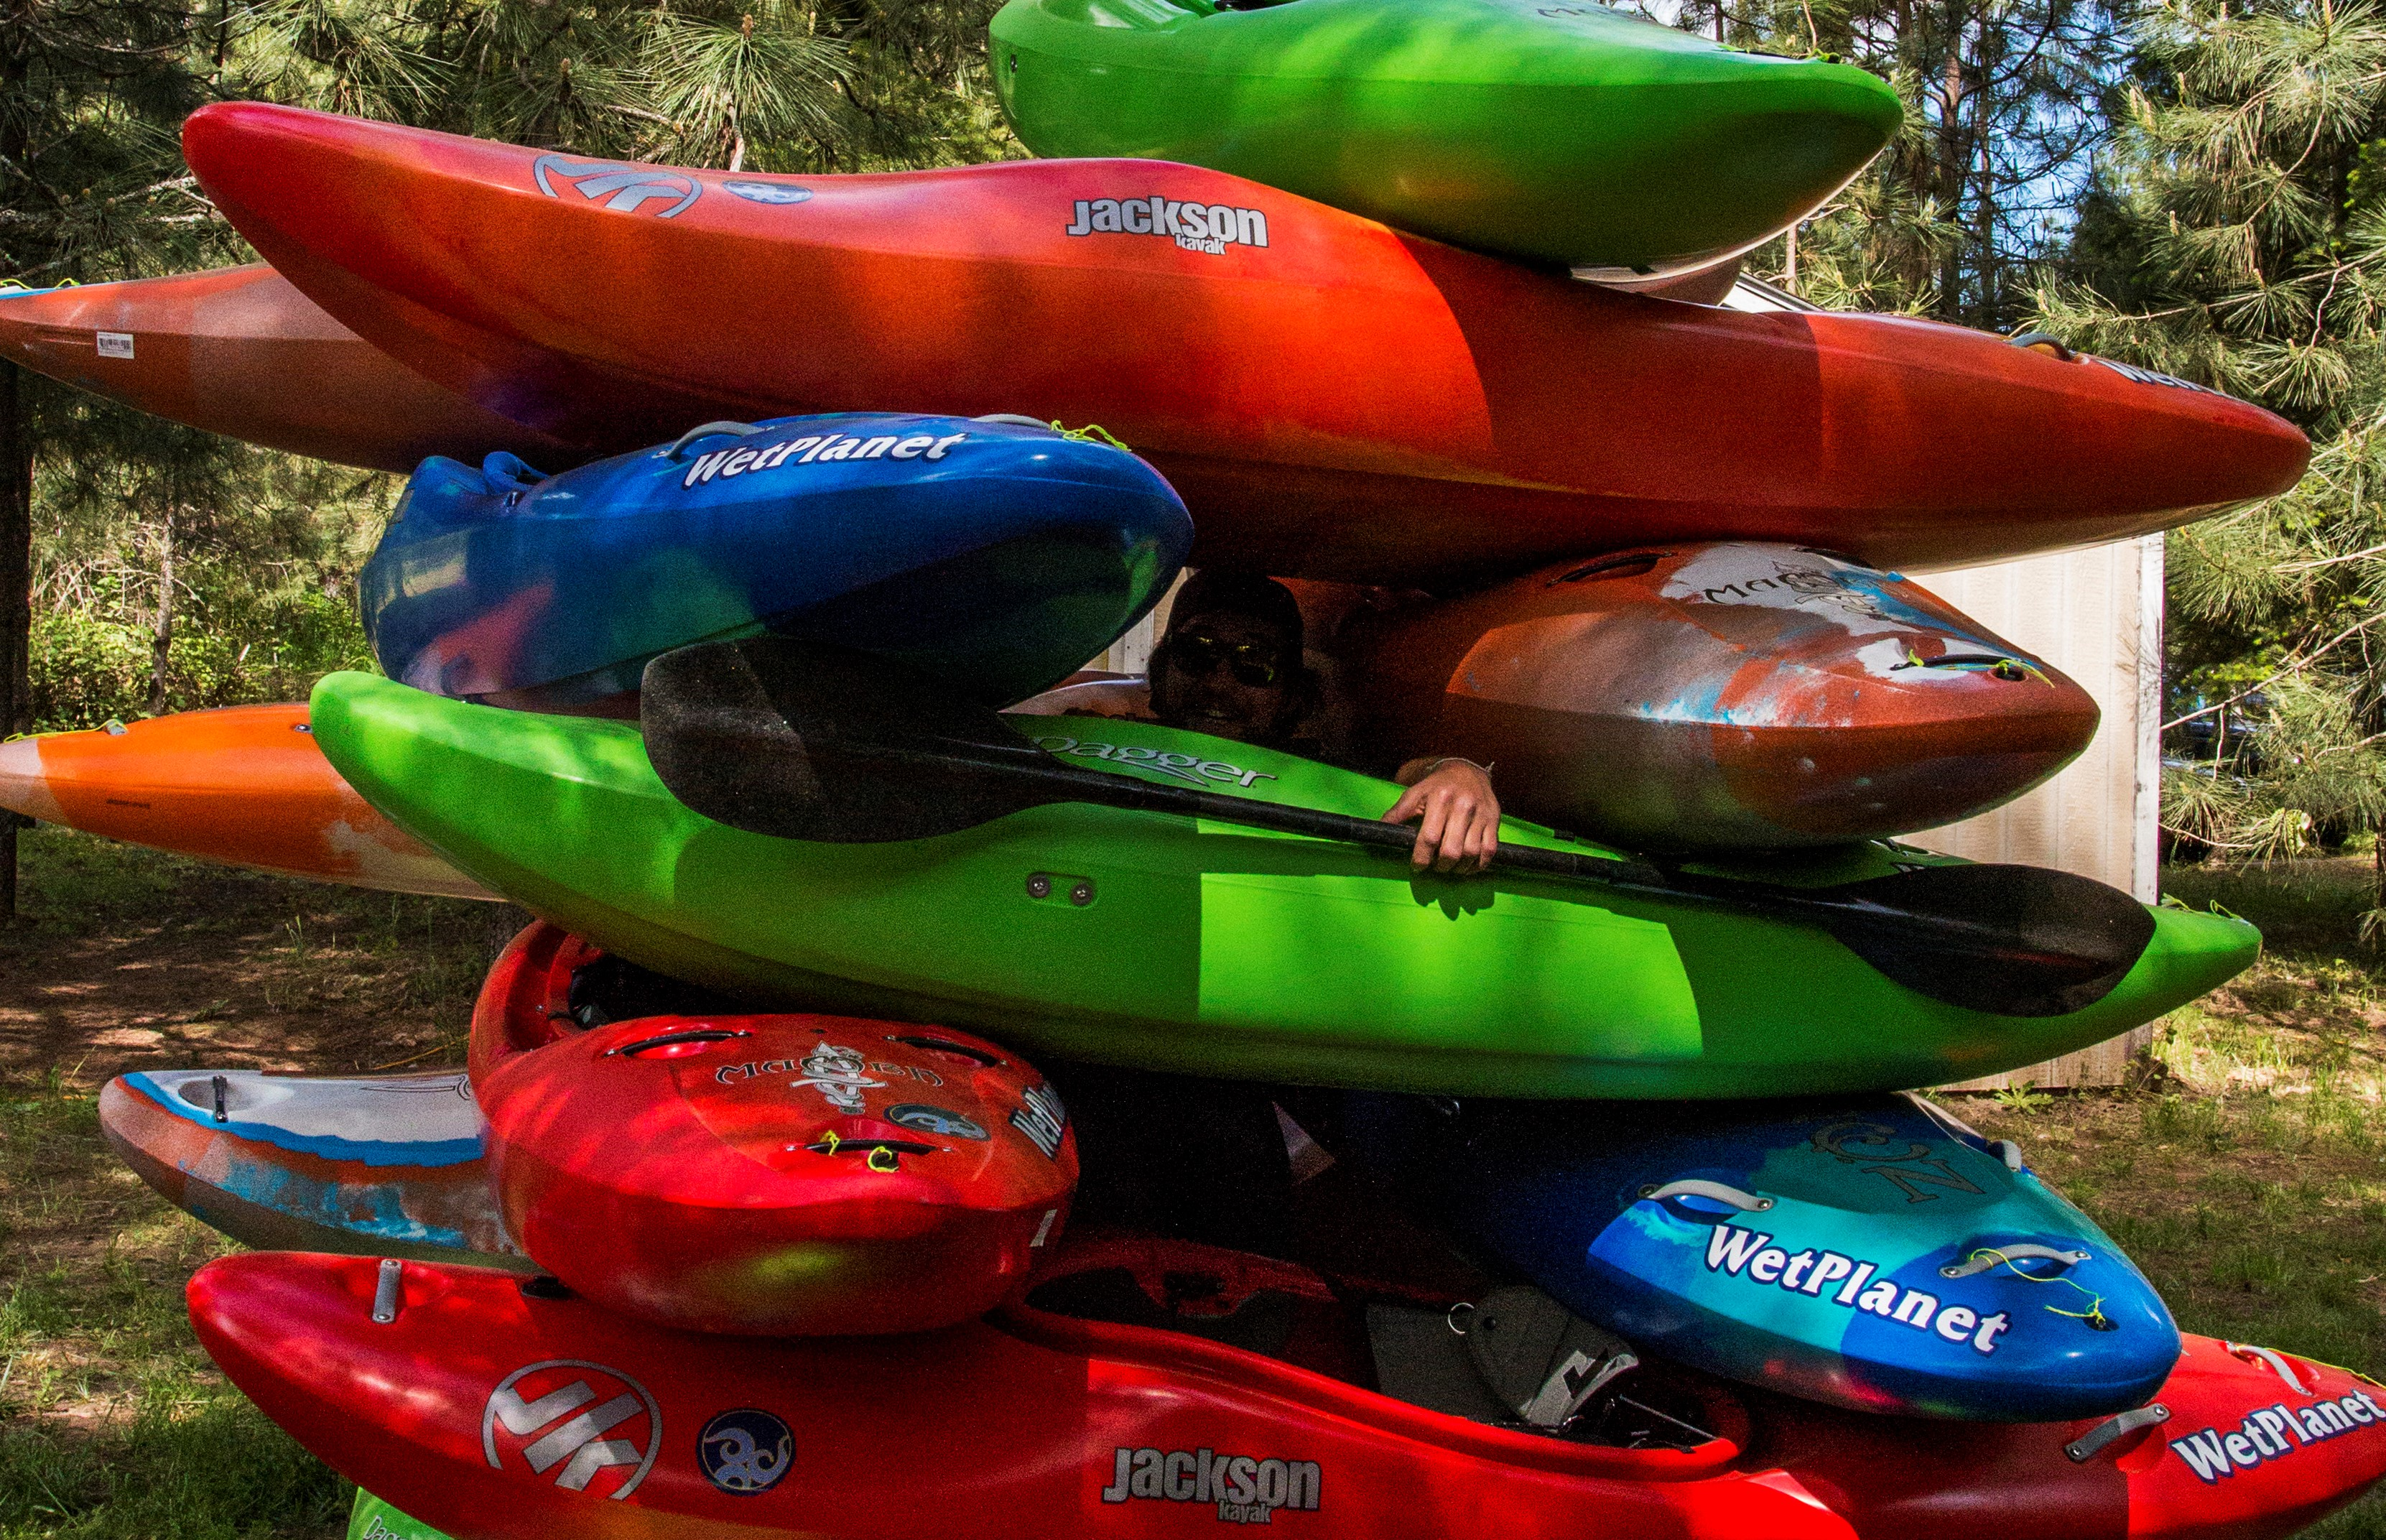 Kayak School Annual Used Kayak Sale - Wet Planet Whitewater